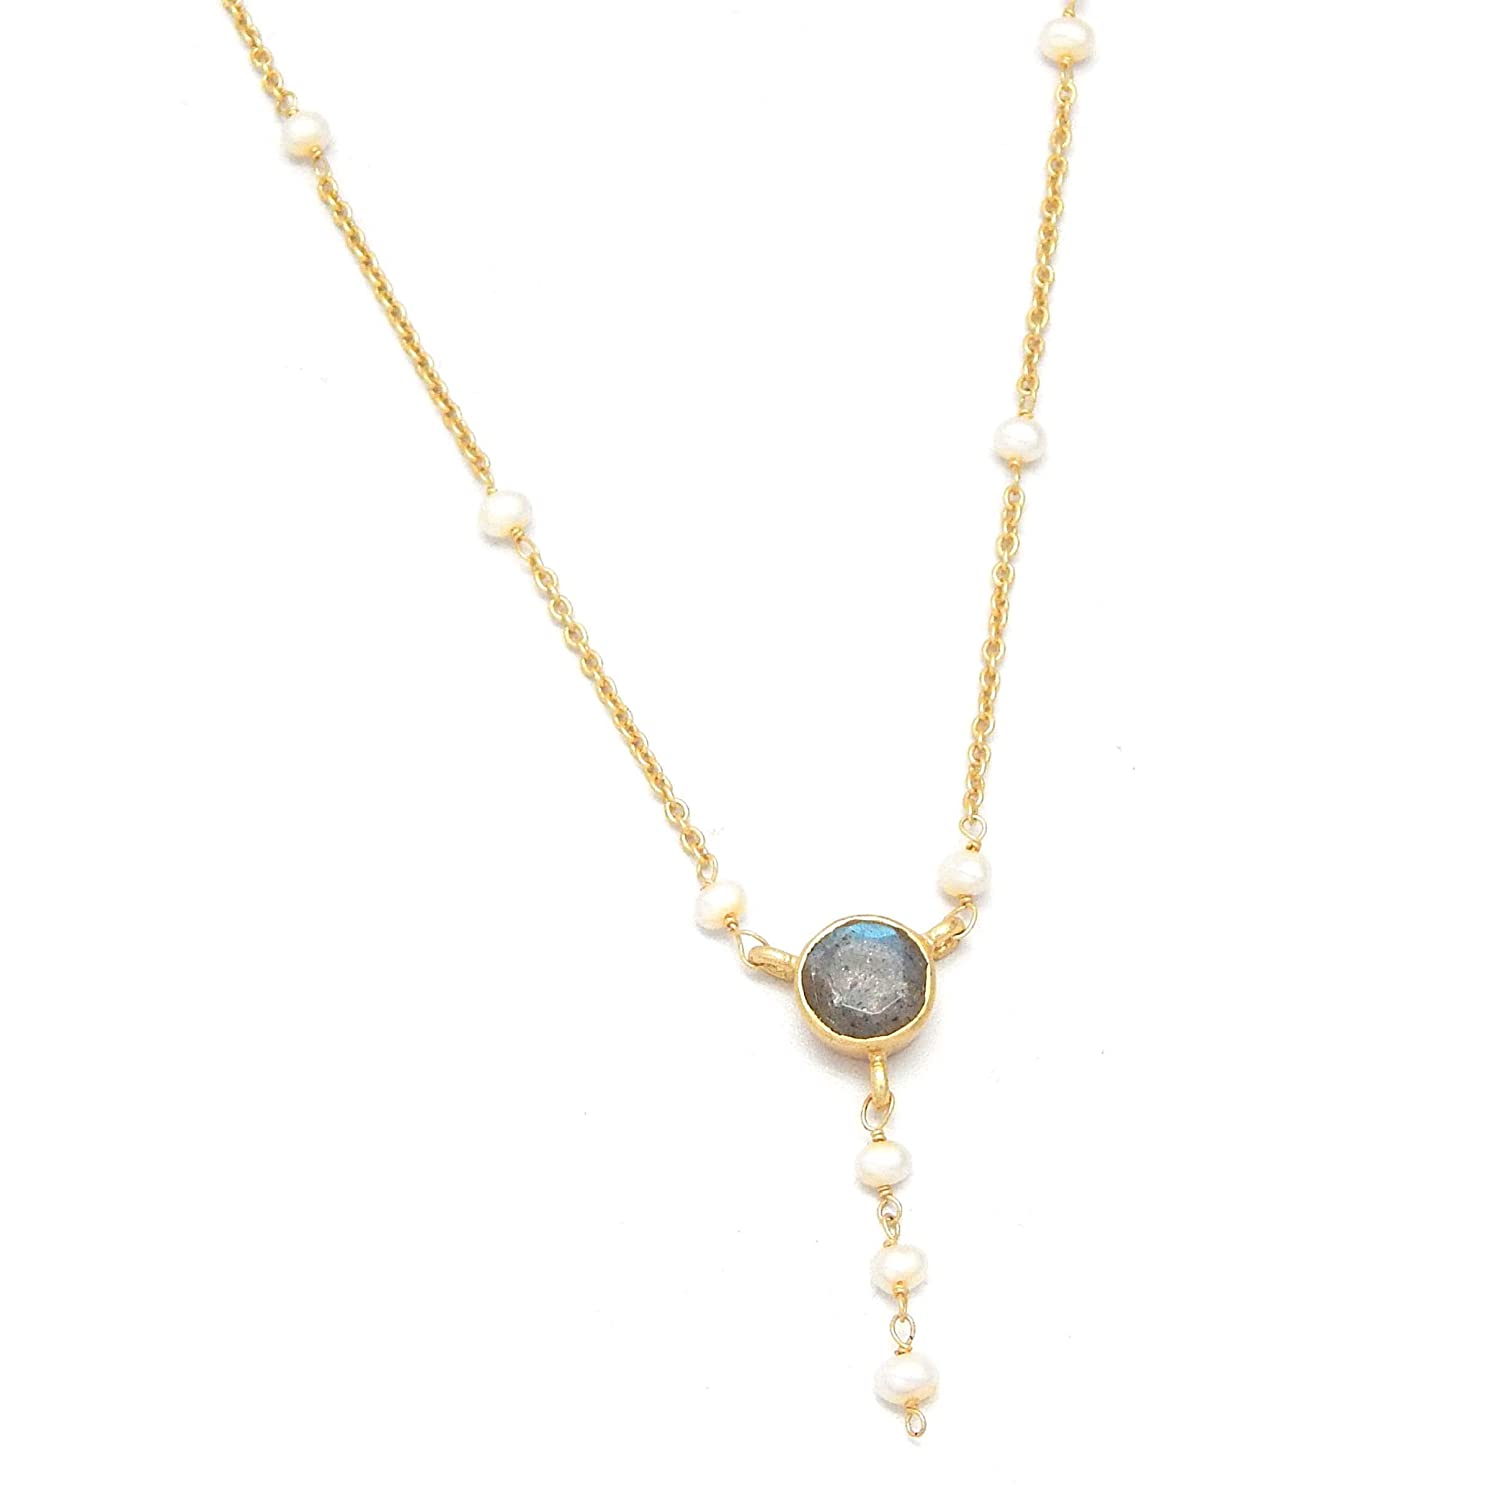 V Collection The Pendant Necklaces Yellow Gold Plated Labradorite and Pearl Beads Chain Necklaces Gifts for her